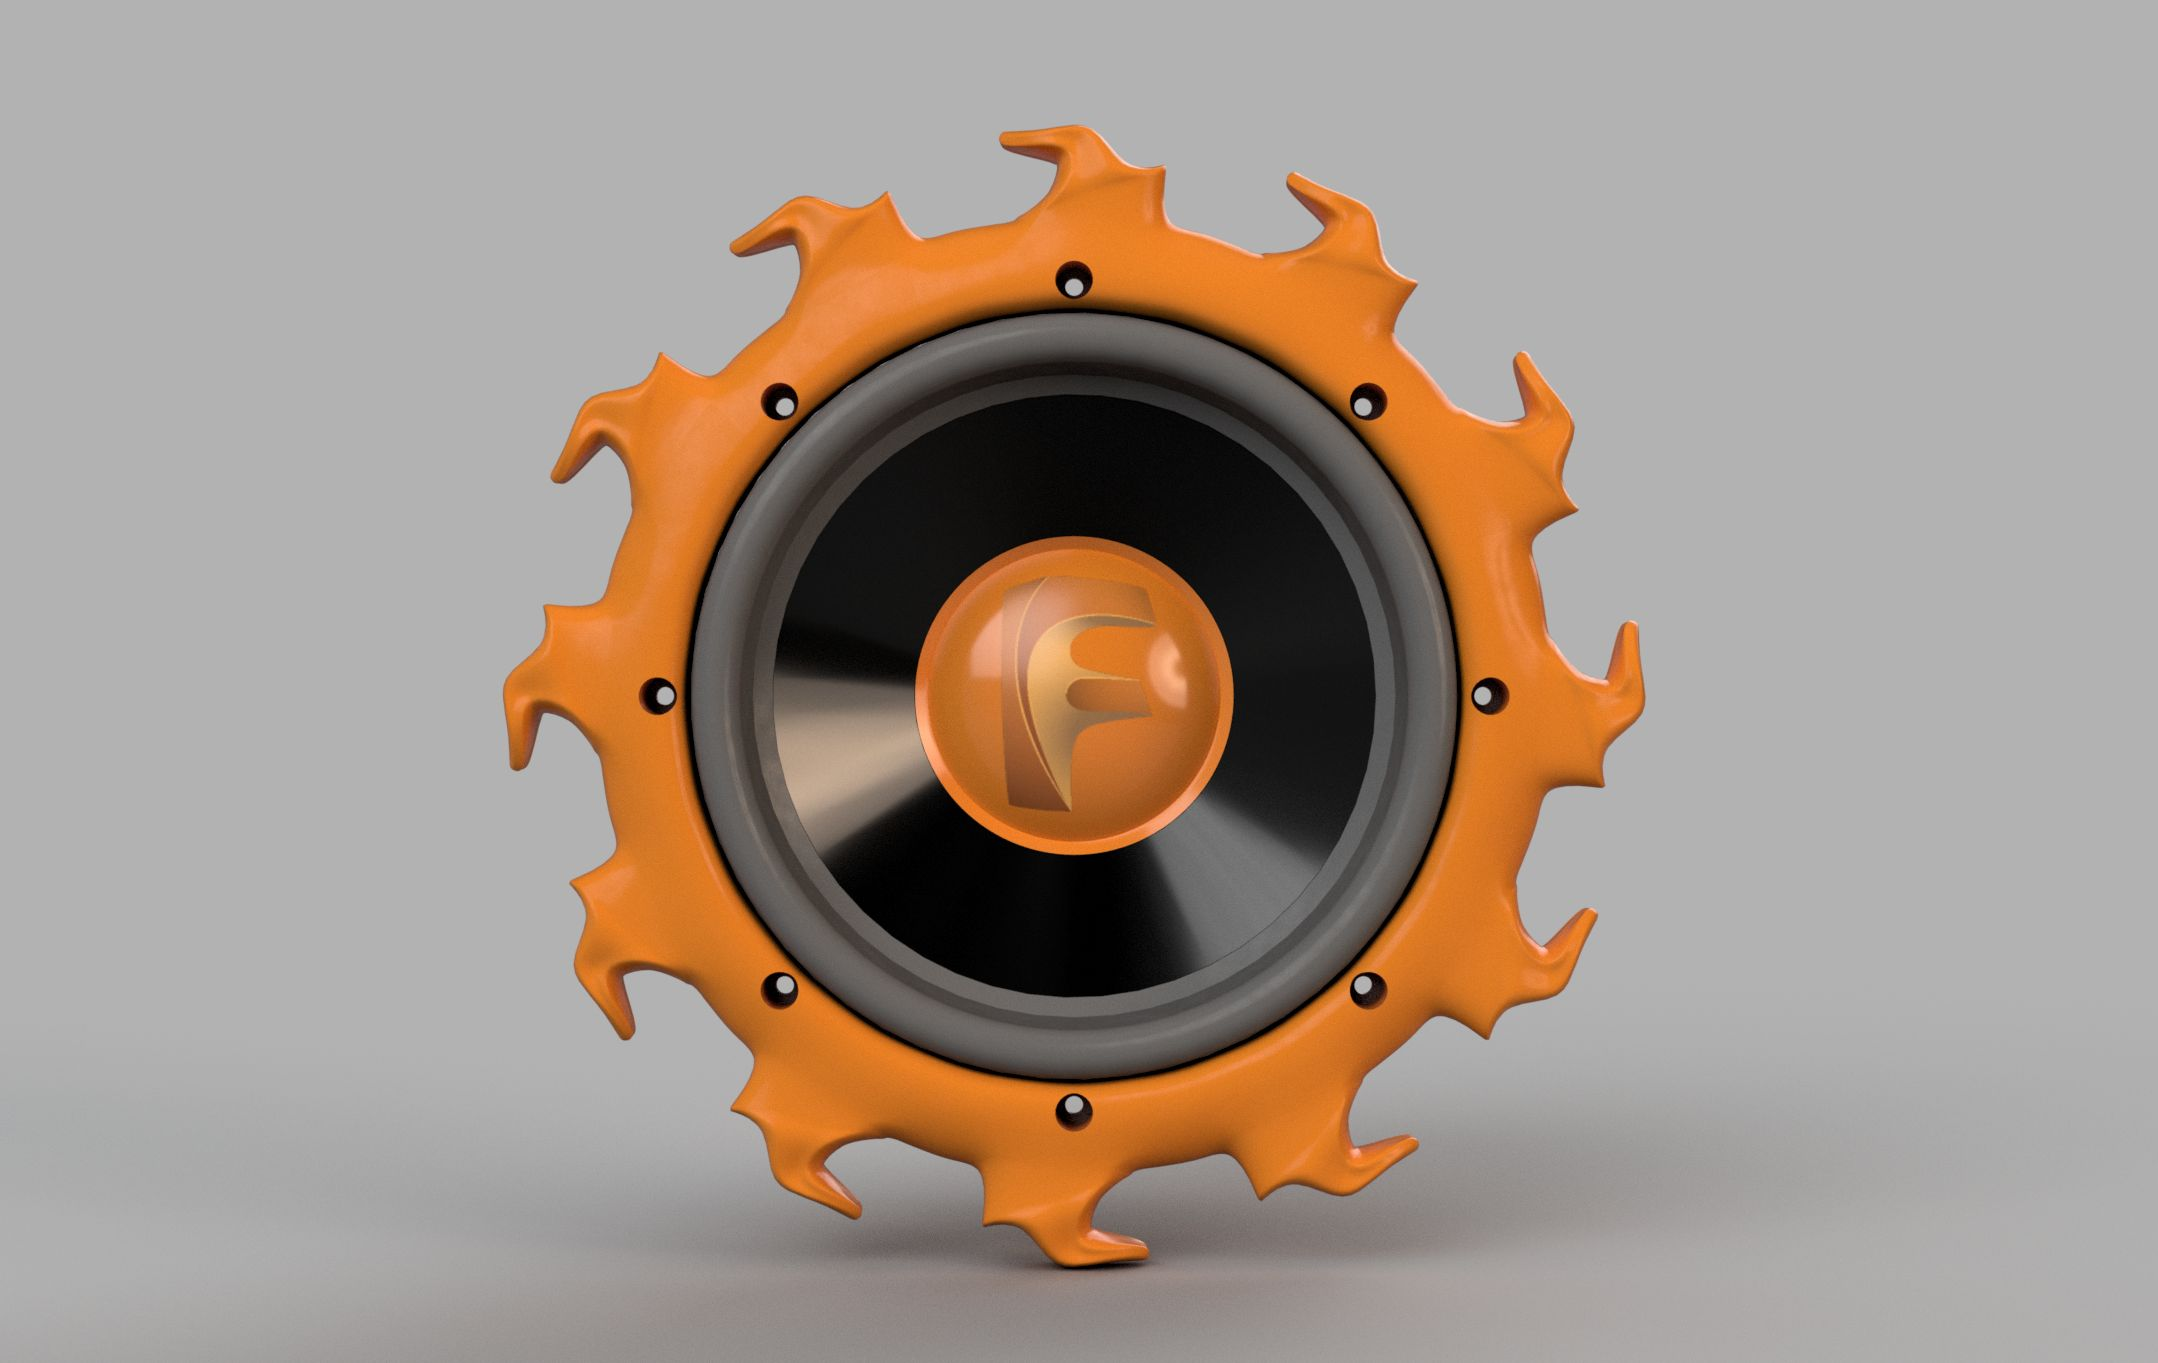 12-inch-woofer-from-vendor-v15-3500-3500